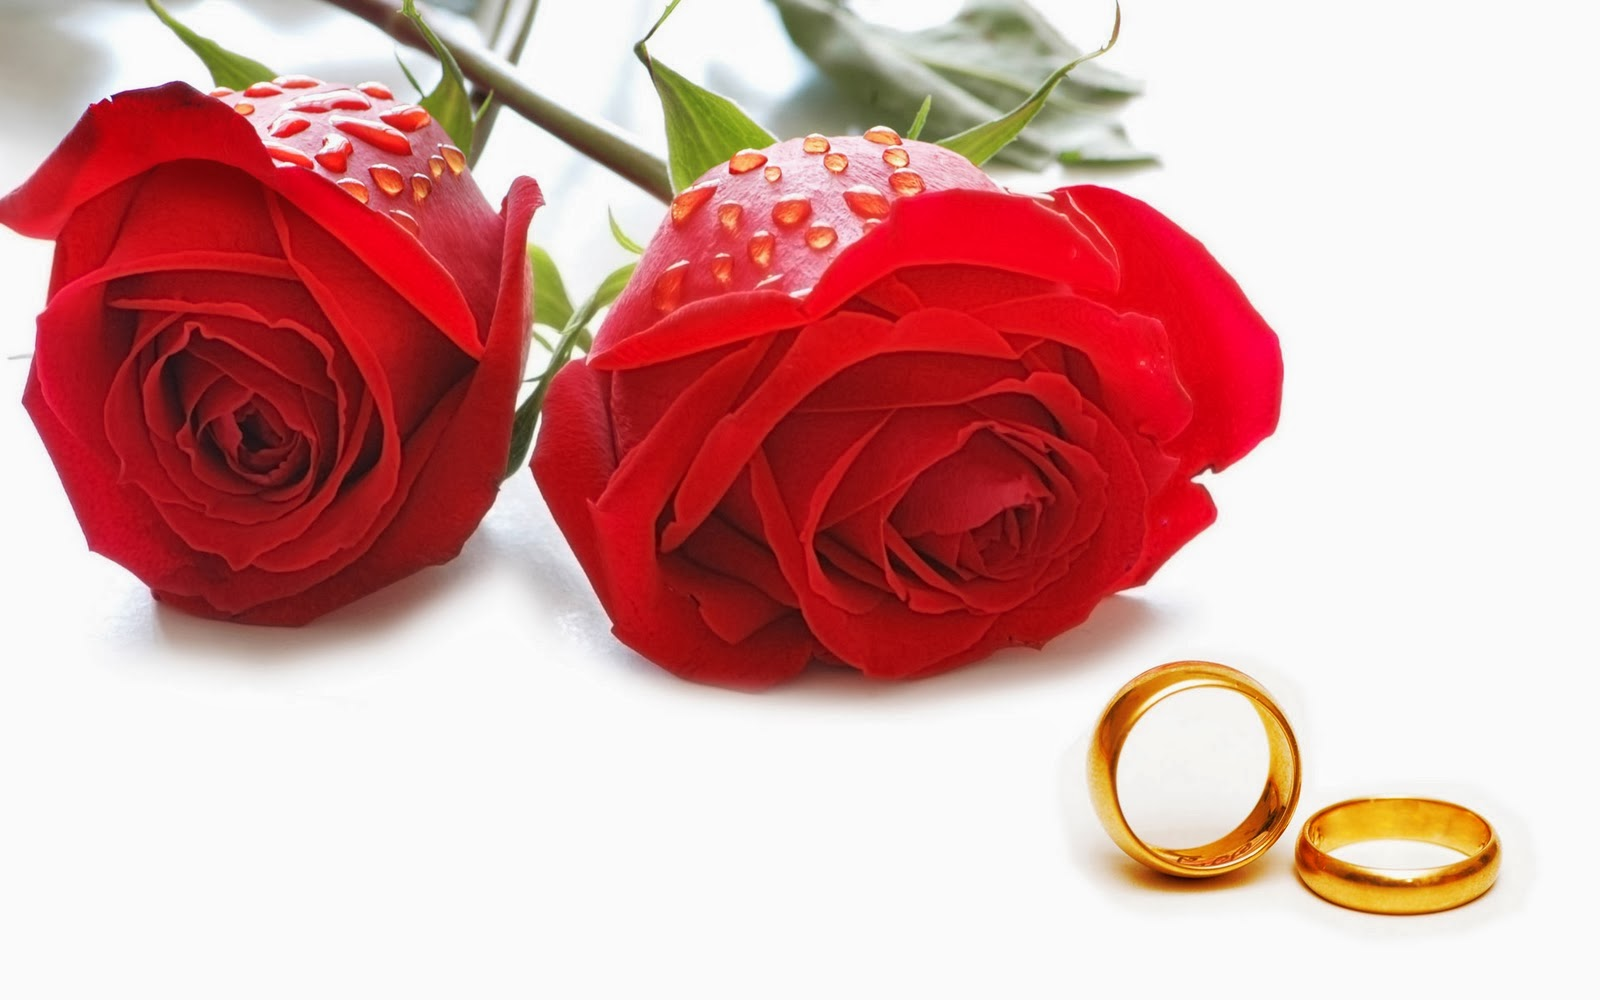 red-rose-with-marriage-rings-valentines-day-pictures-HD-cards-printable-collection.jpg